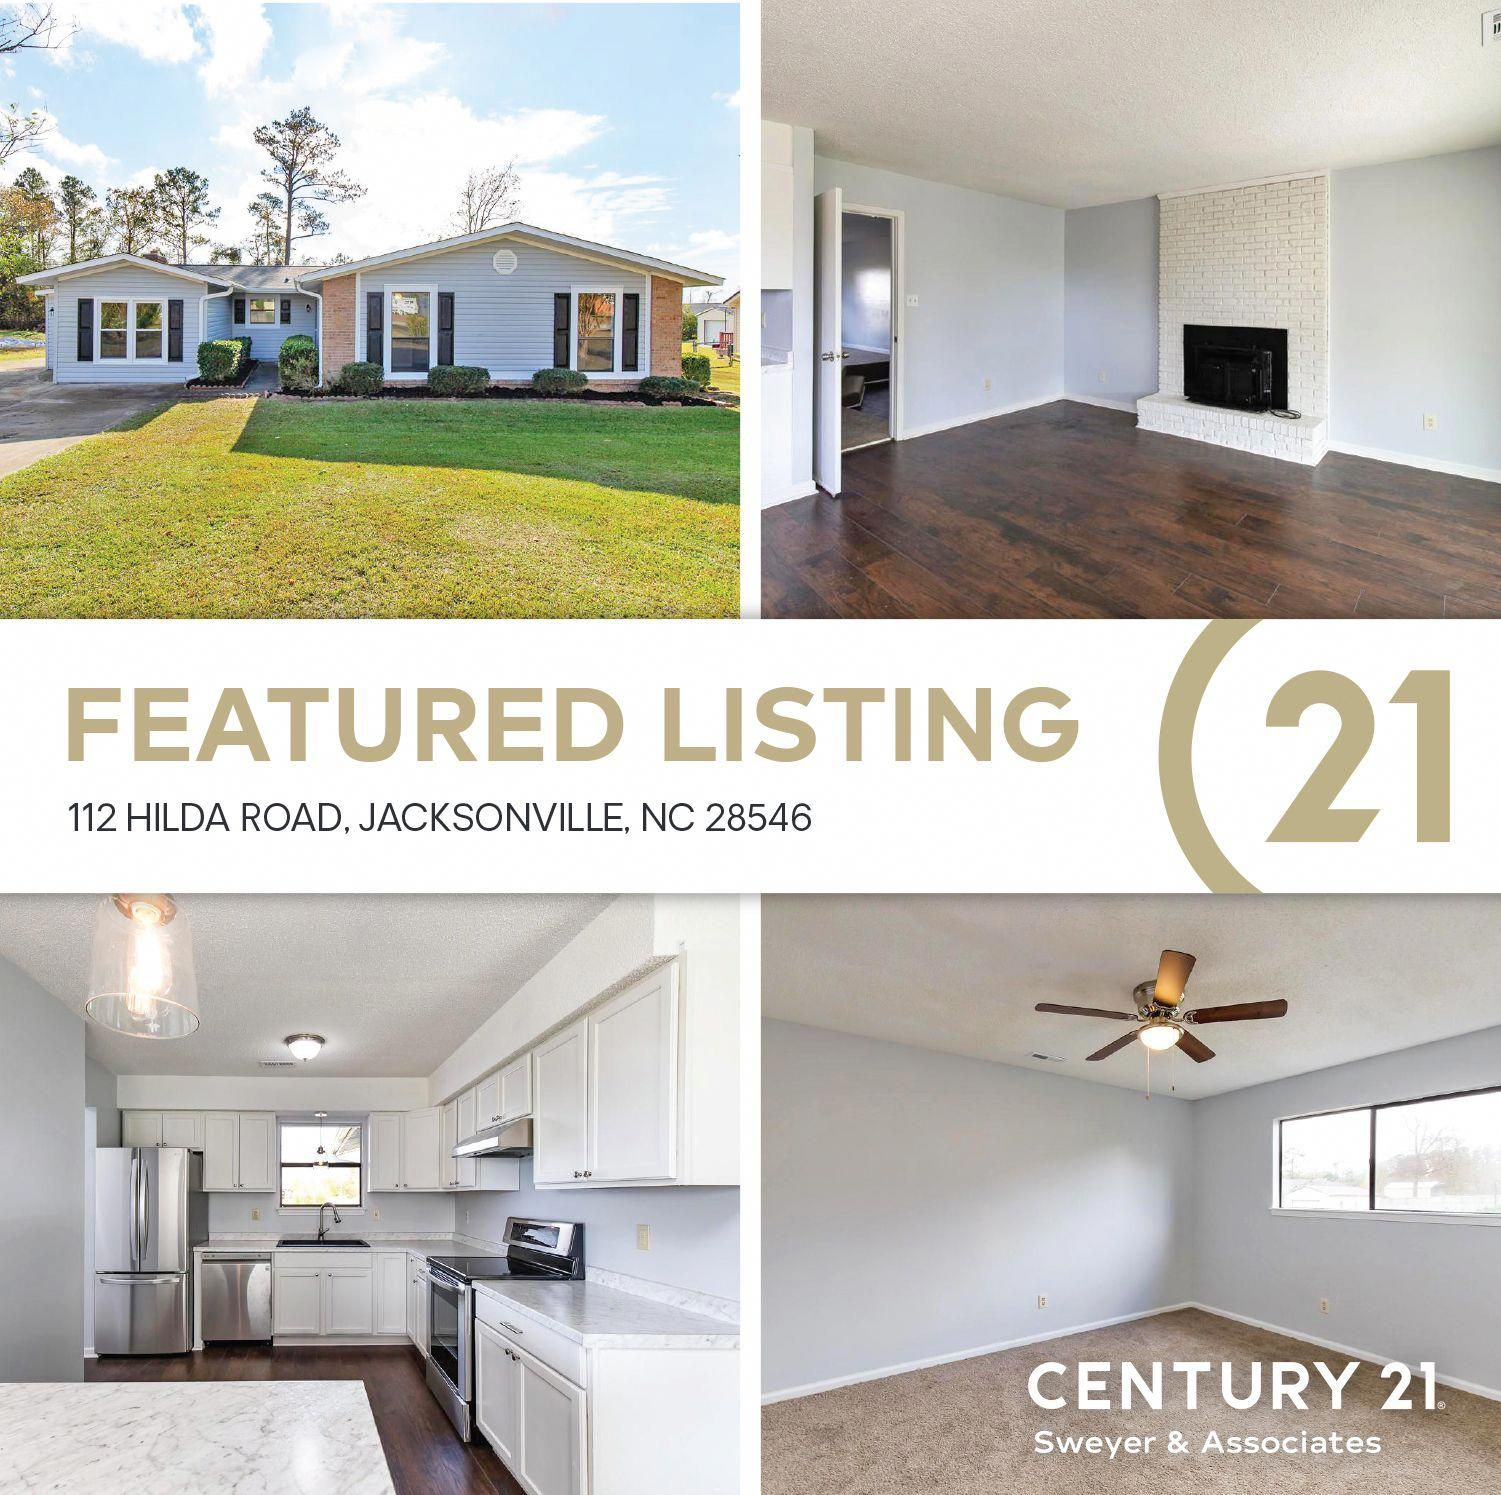 Century 21 Sweyer Ociates Presents 112 Hilda Road Jacksonville Nc 28546 Completely